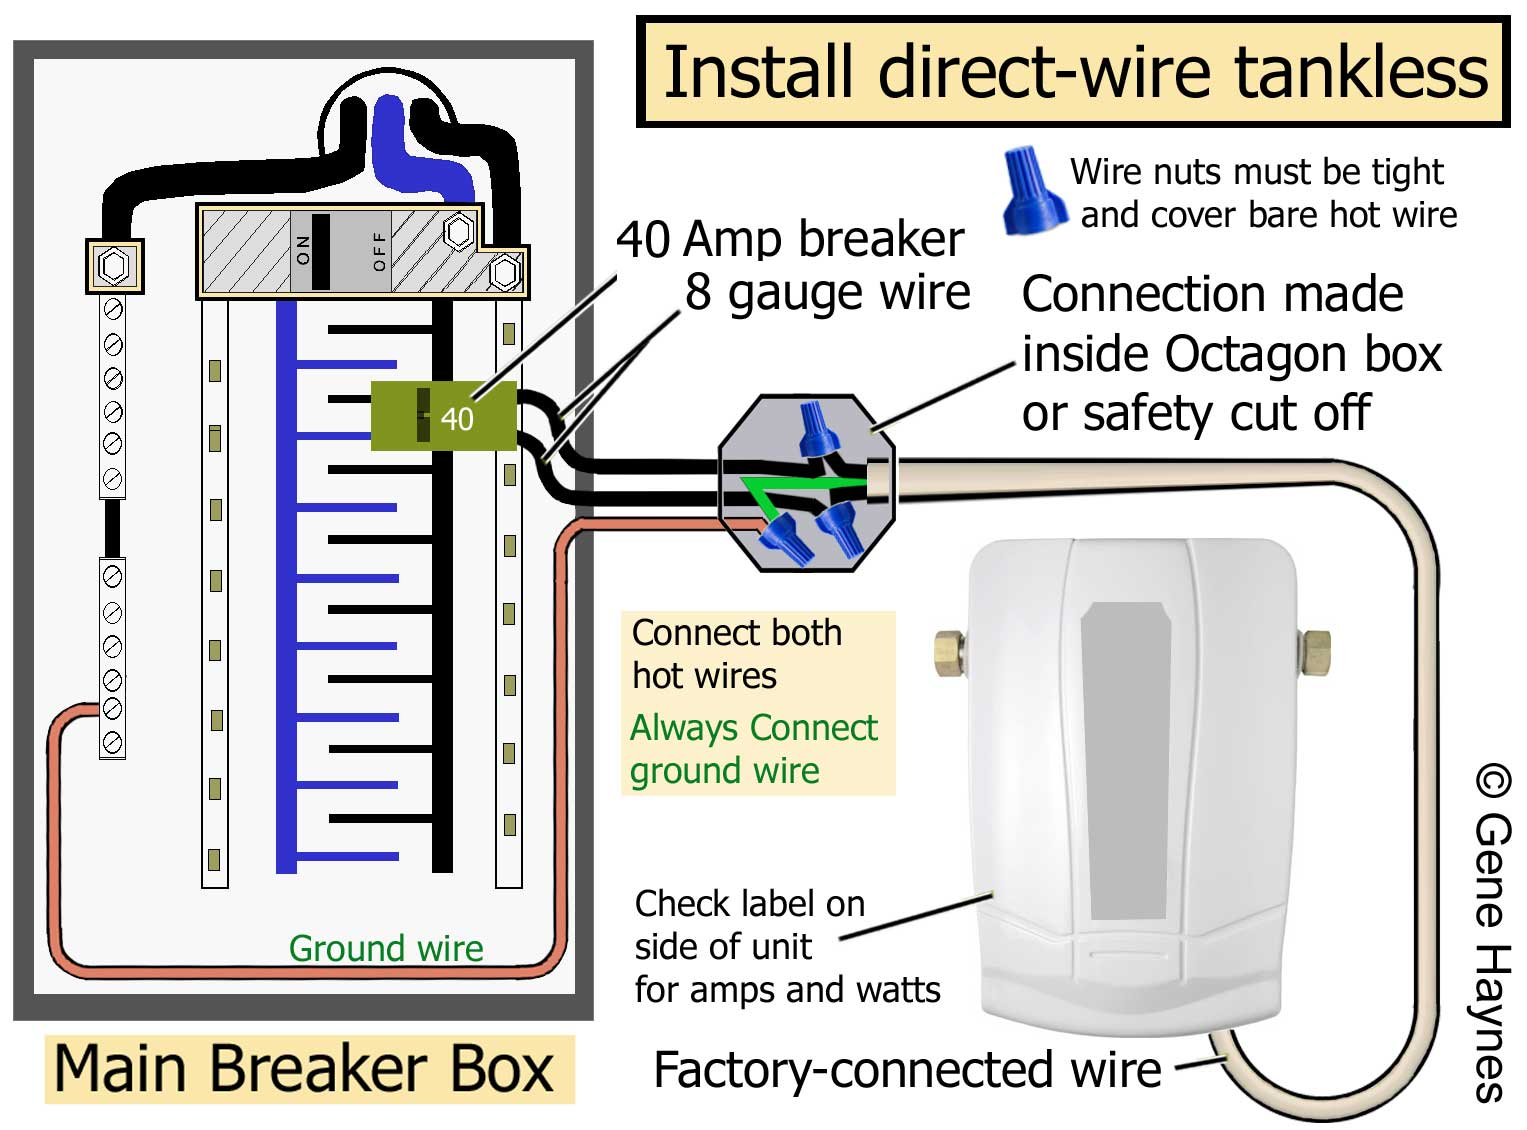 hight resolution of read rating plate on side of unit for amps and watts connect wire from breaker and factory pigtail inside octagon box using wire connectors